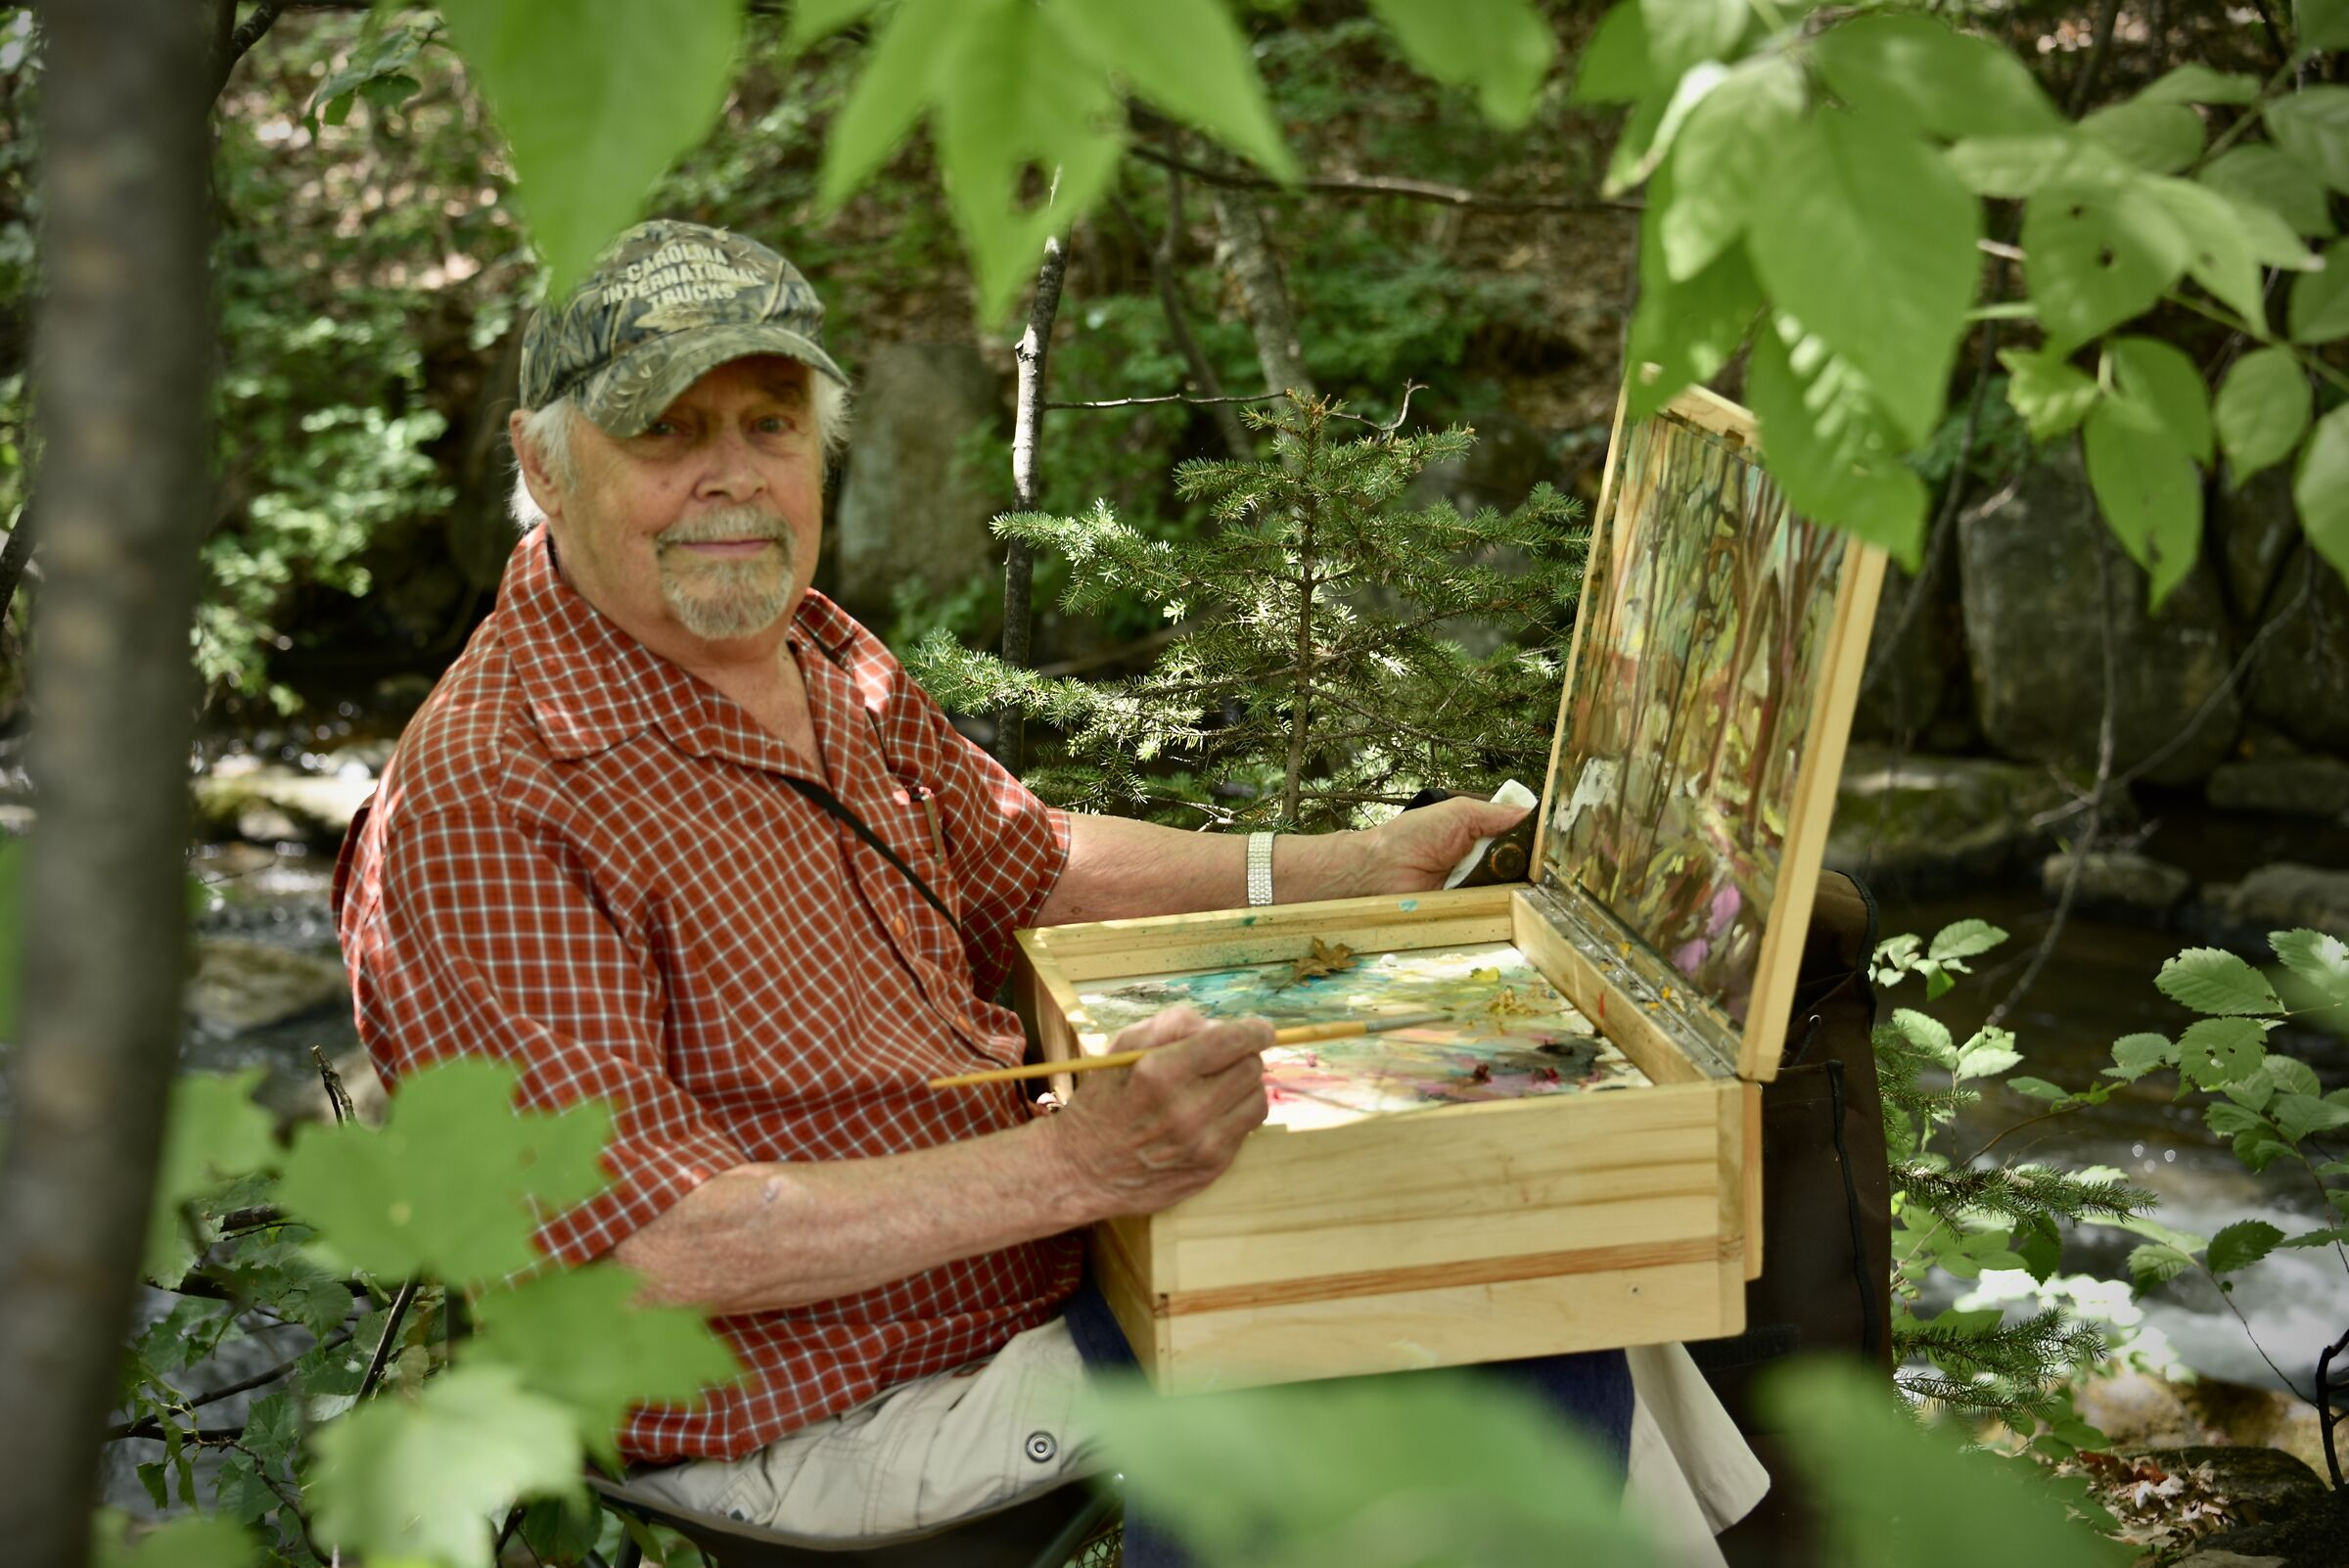 Painter, Jean-Guy Desrosiers from Quebec. 86 years old...